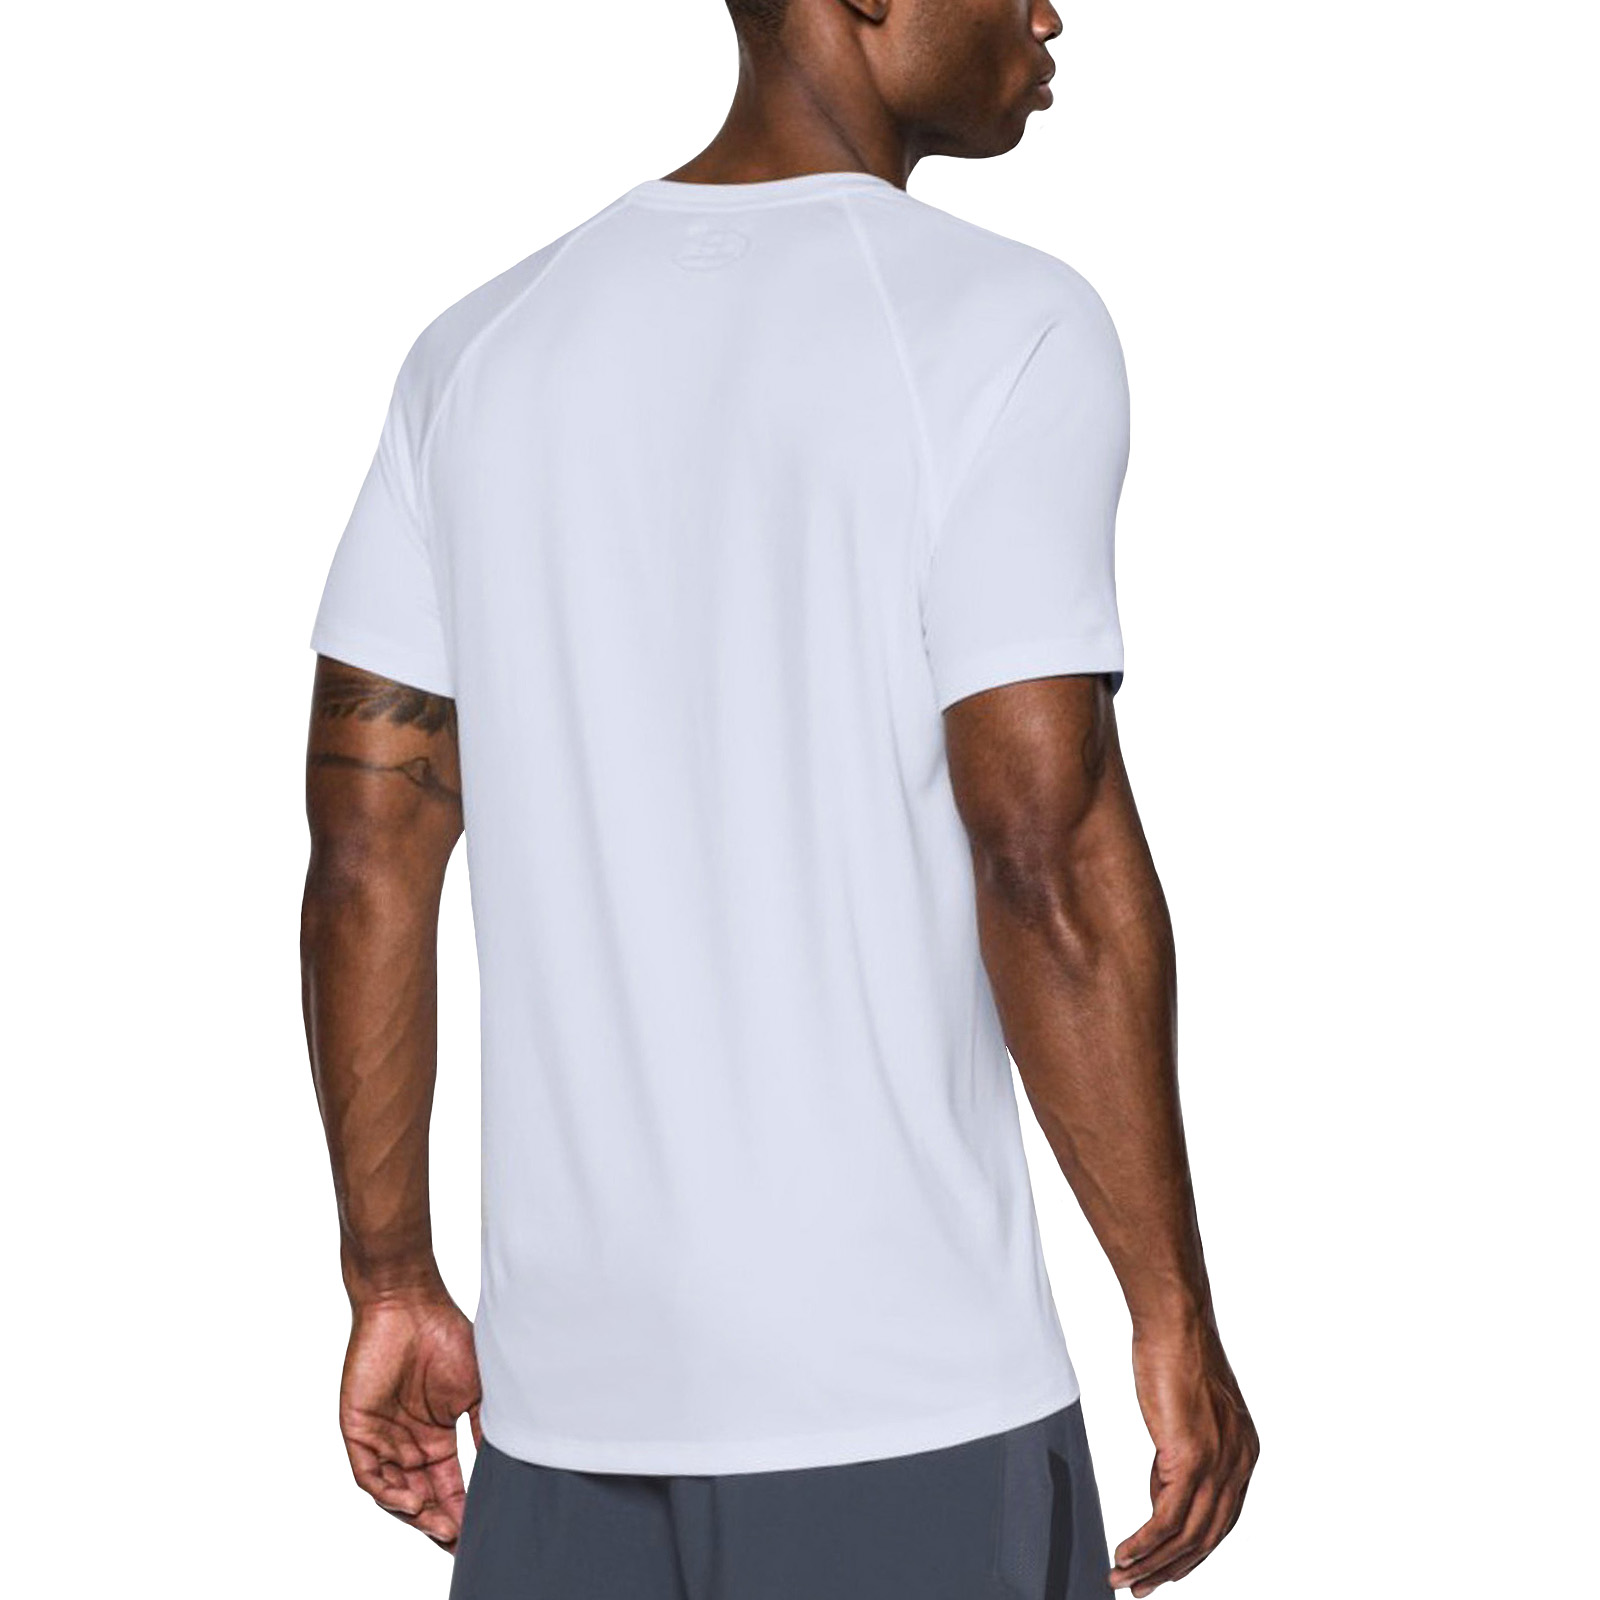 Under Armour Mens Speed Stride Short Sleeve Sports Gym T-Shirt Tee Top